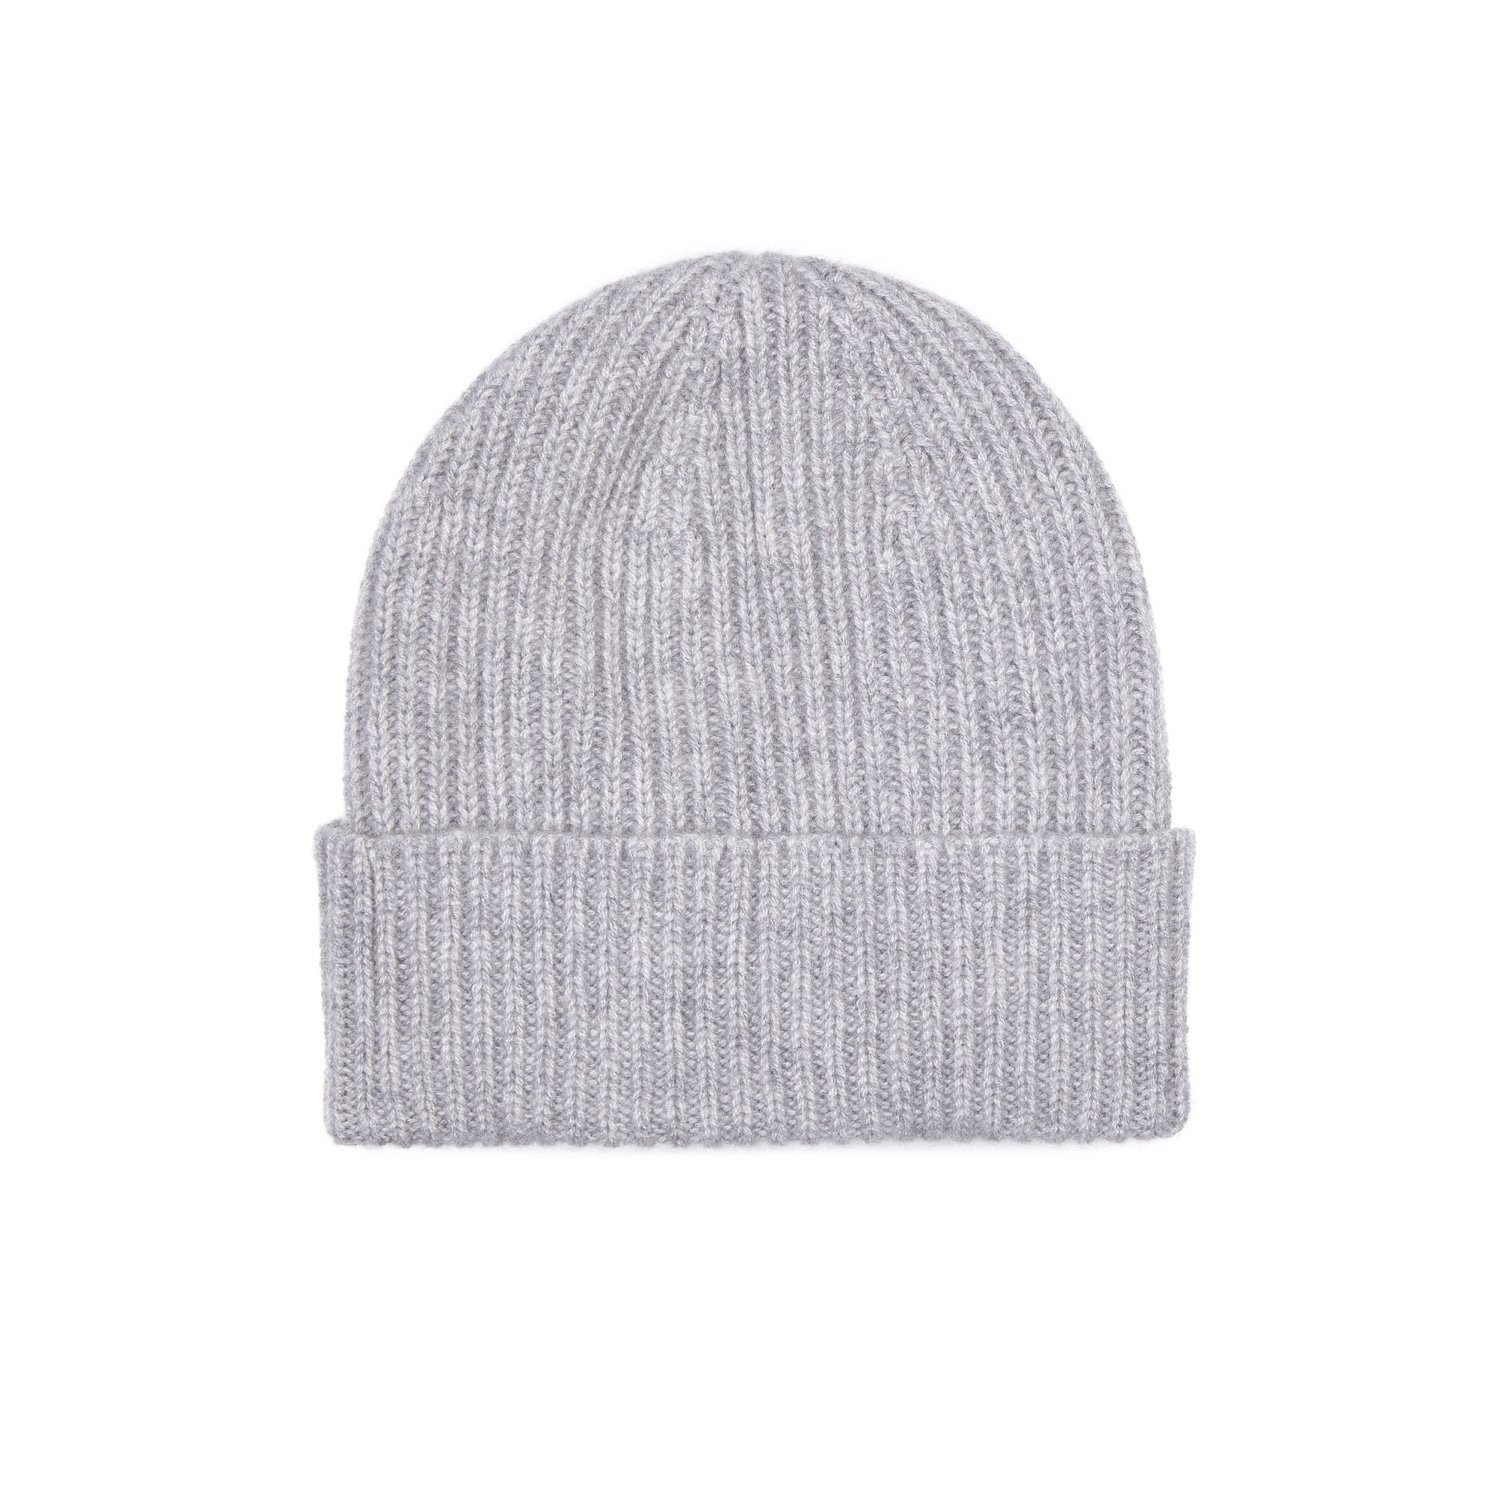 100% Cashmere Beanie Hat in 3ply, Made in Scotland Black